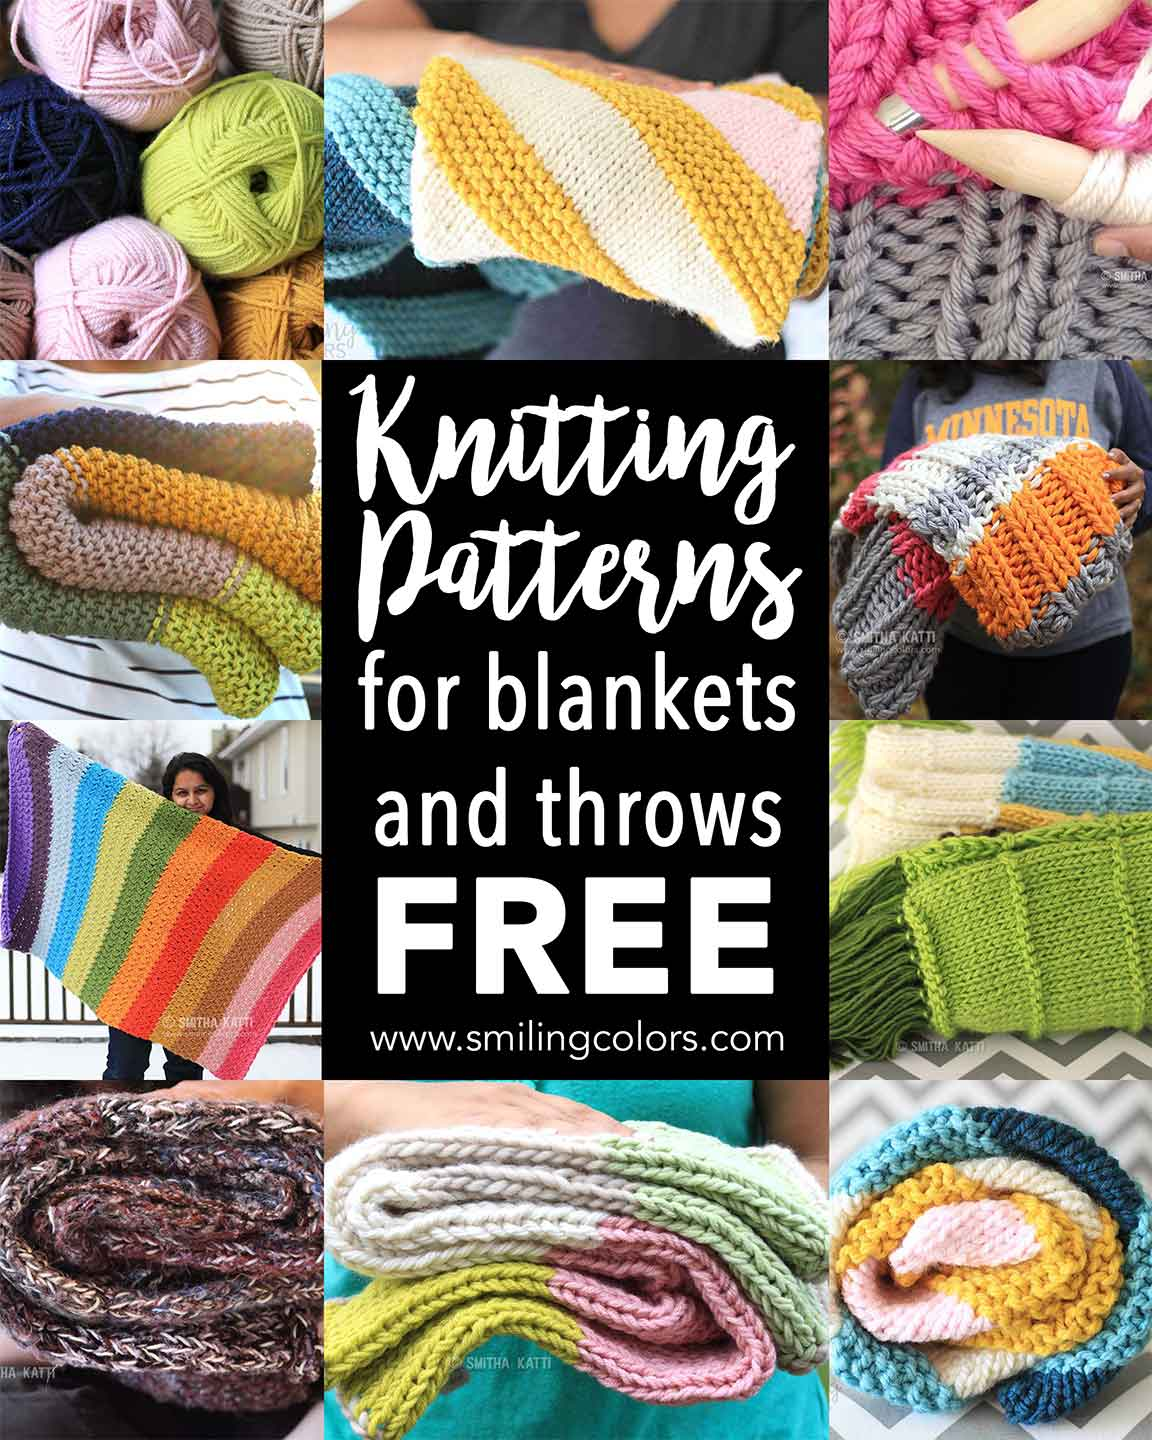 Knitting patterns for blankets and throws FREE - Smitha Katti